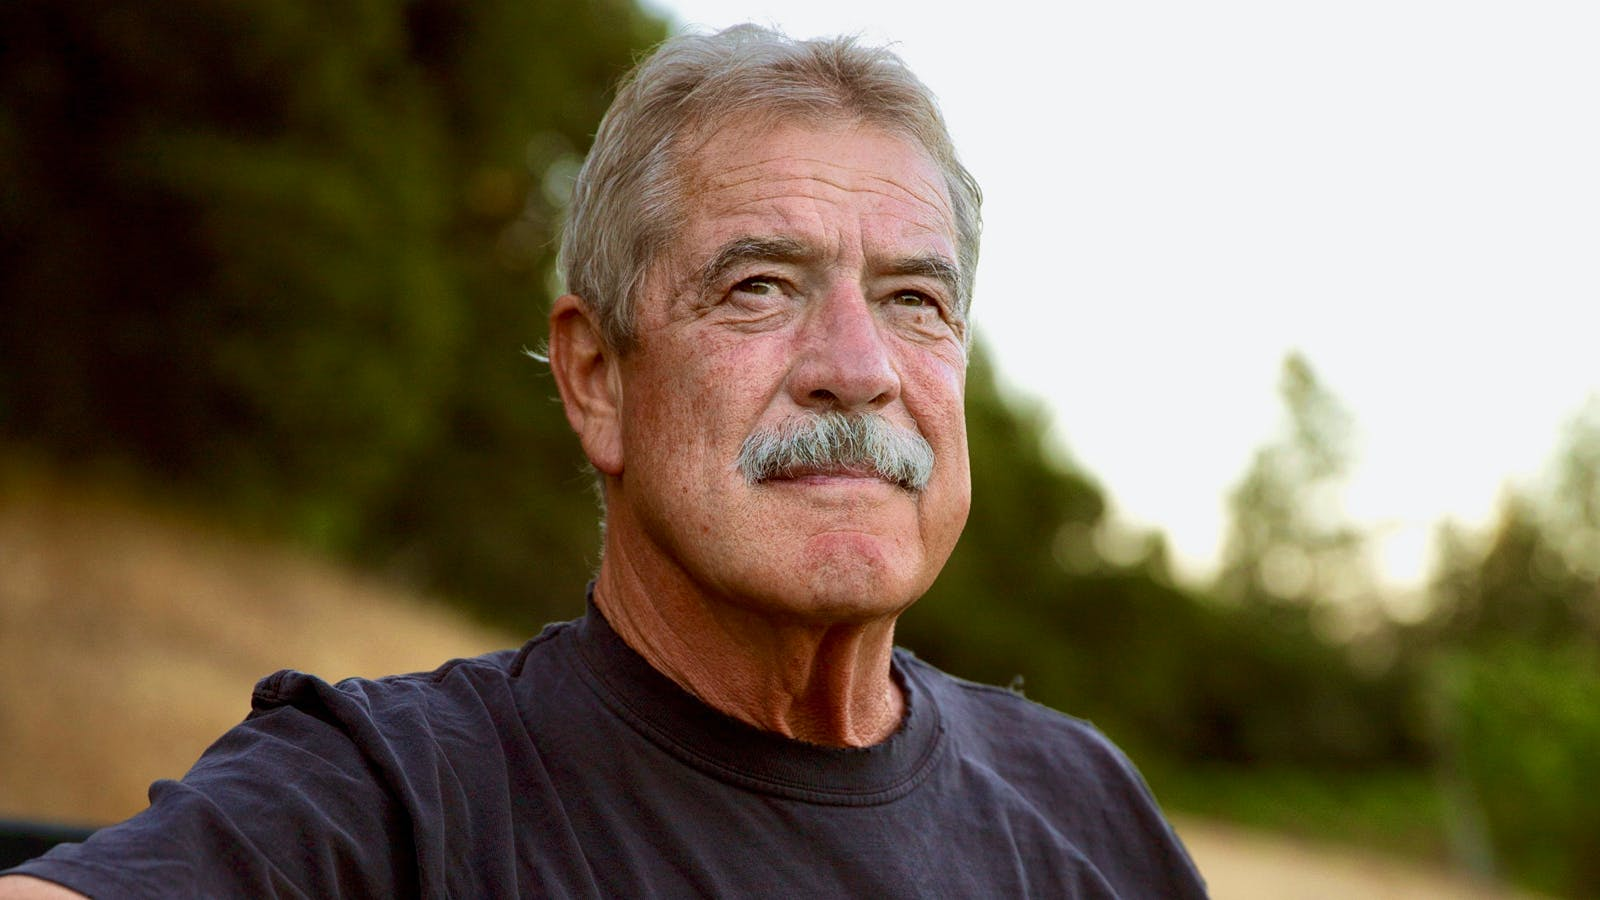 Chris Bilbro, Founder of Sonoma's Marietta Cellars and Father to Three Winemakers, Dies at 72